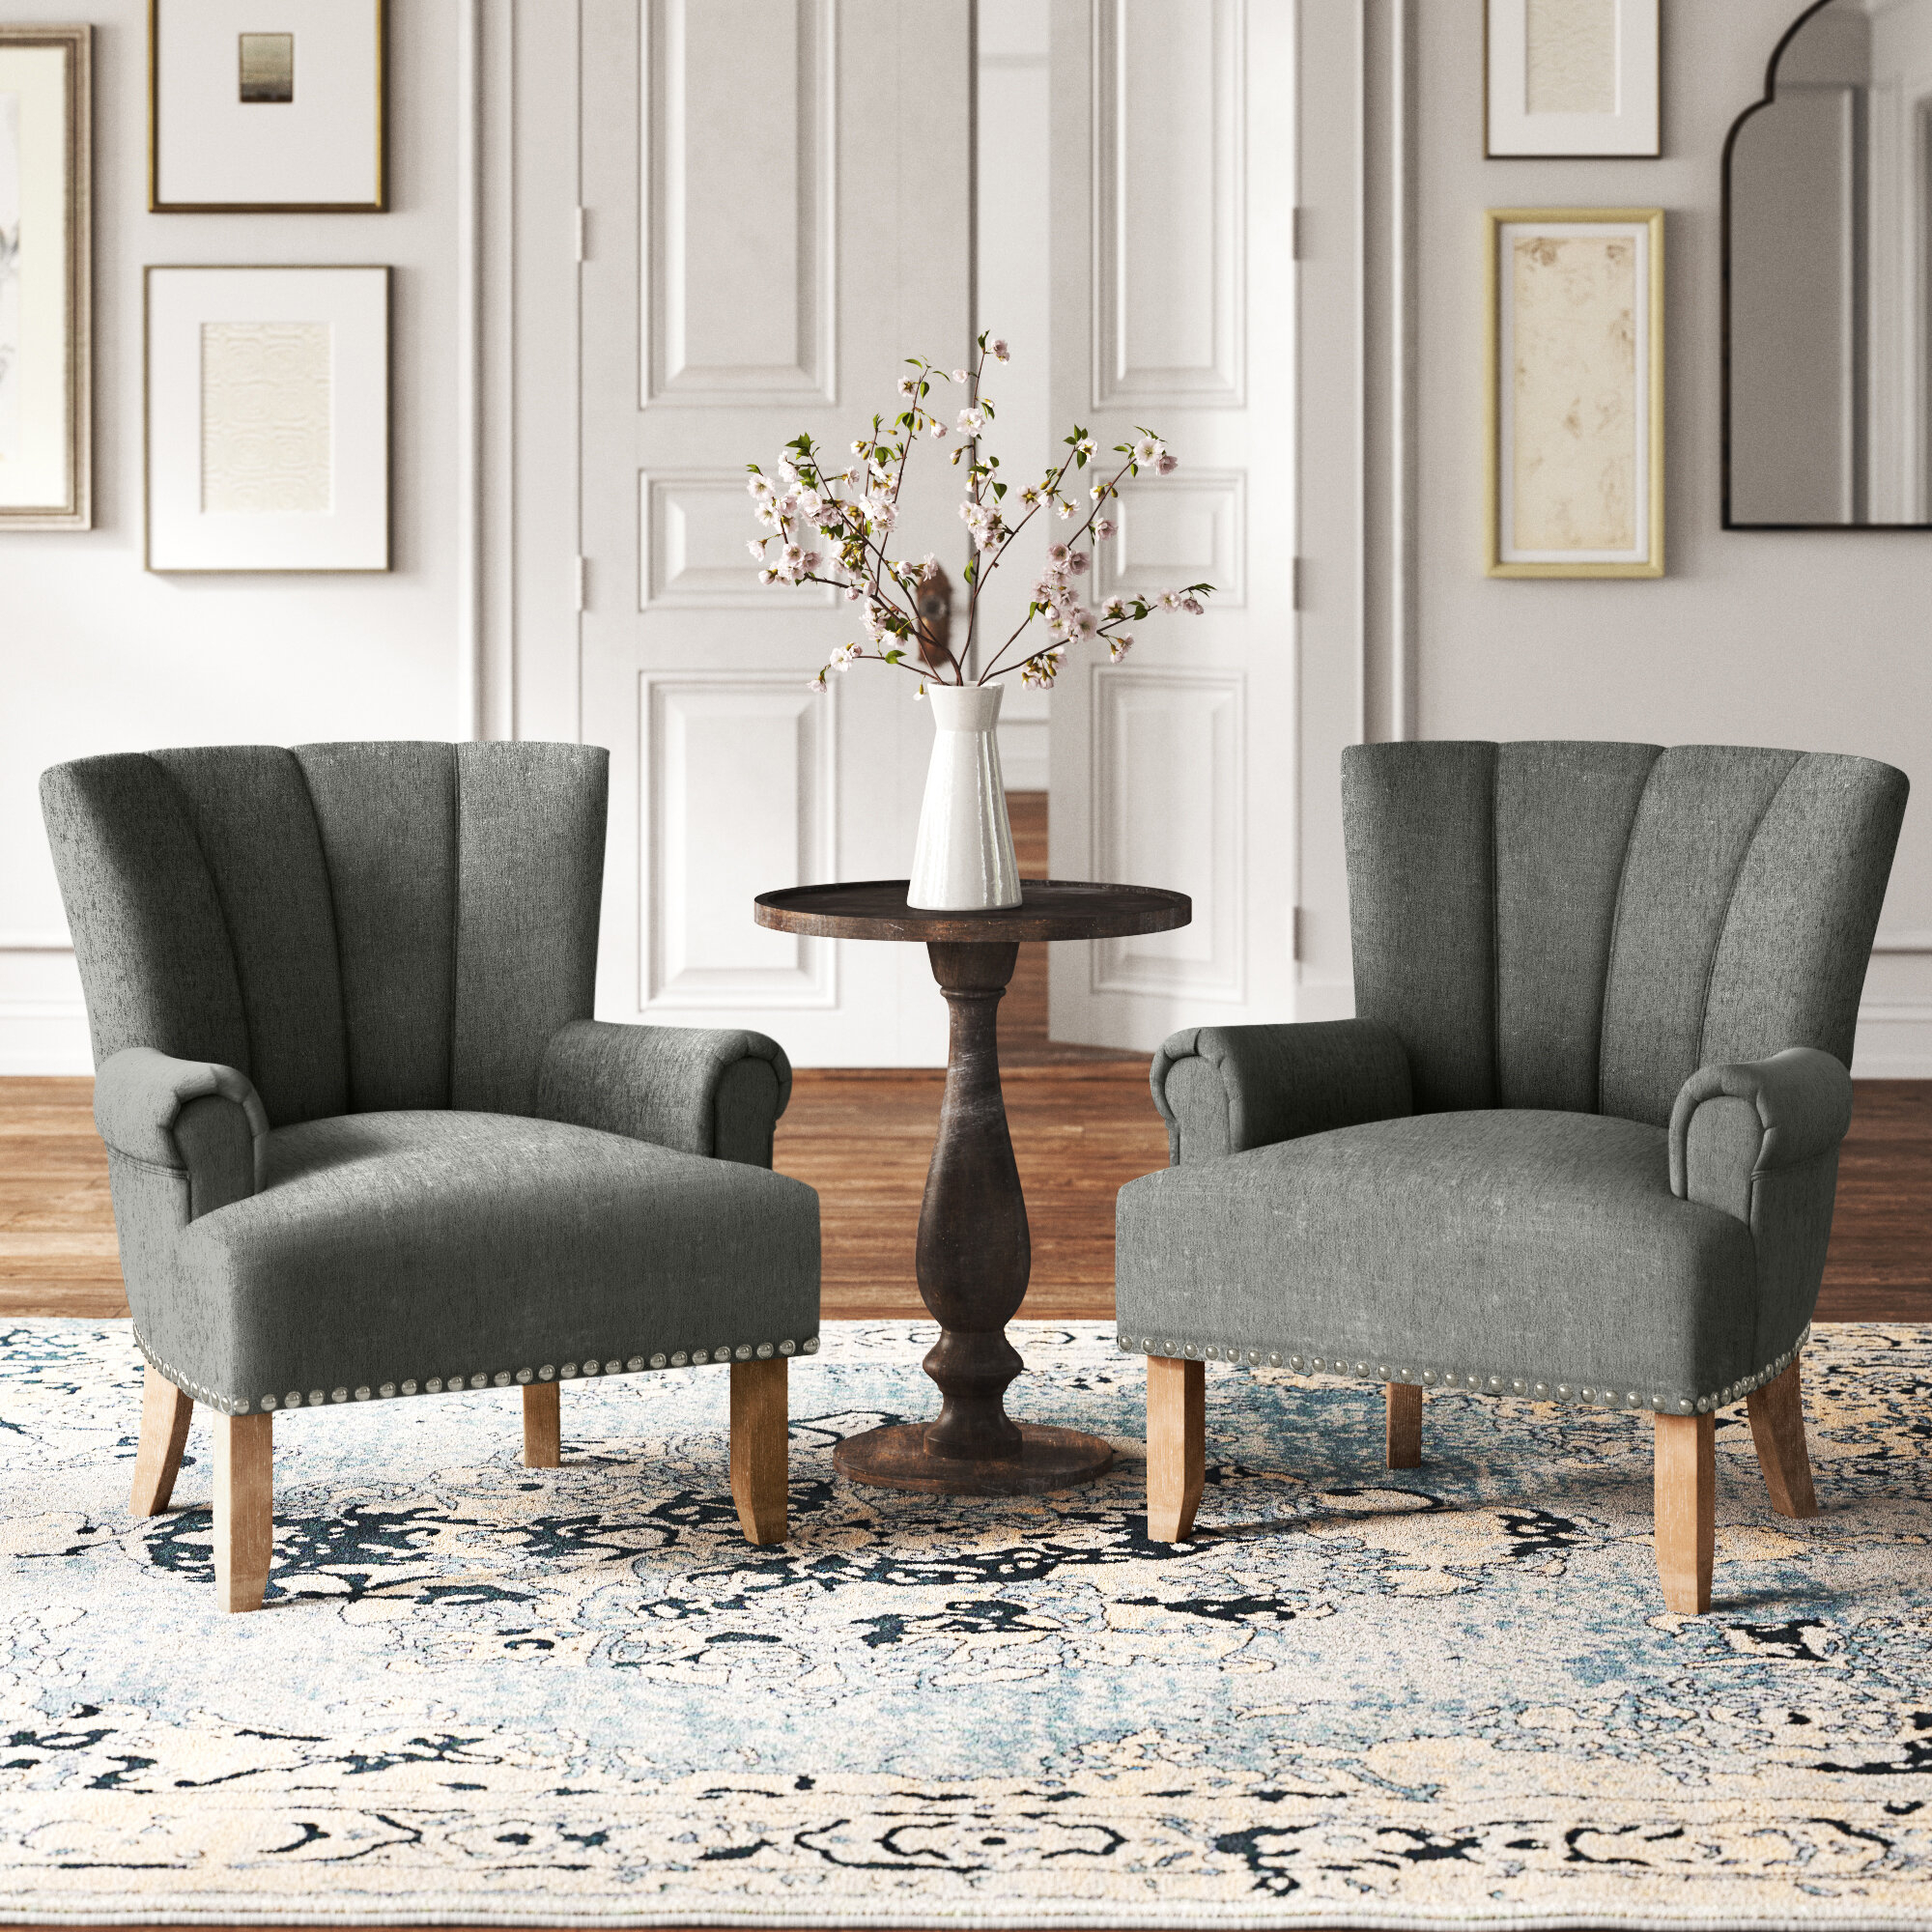 Arm Chair Set Accent Chairs You'Ll Love In 2021 | Wayfair Throughout Focht Armchairs (View 4 of 15)